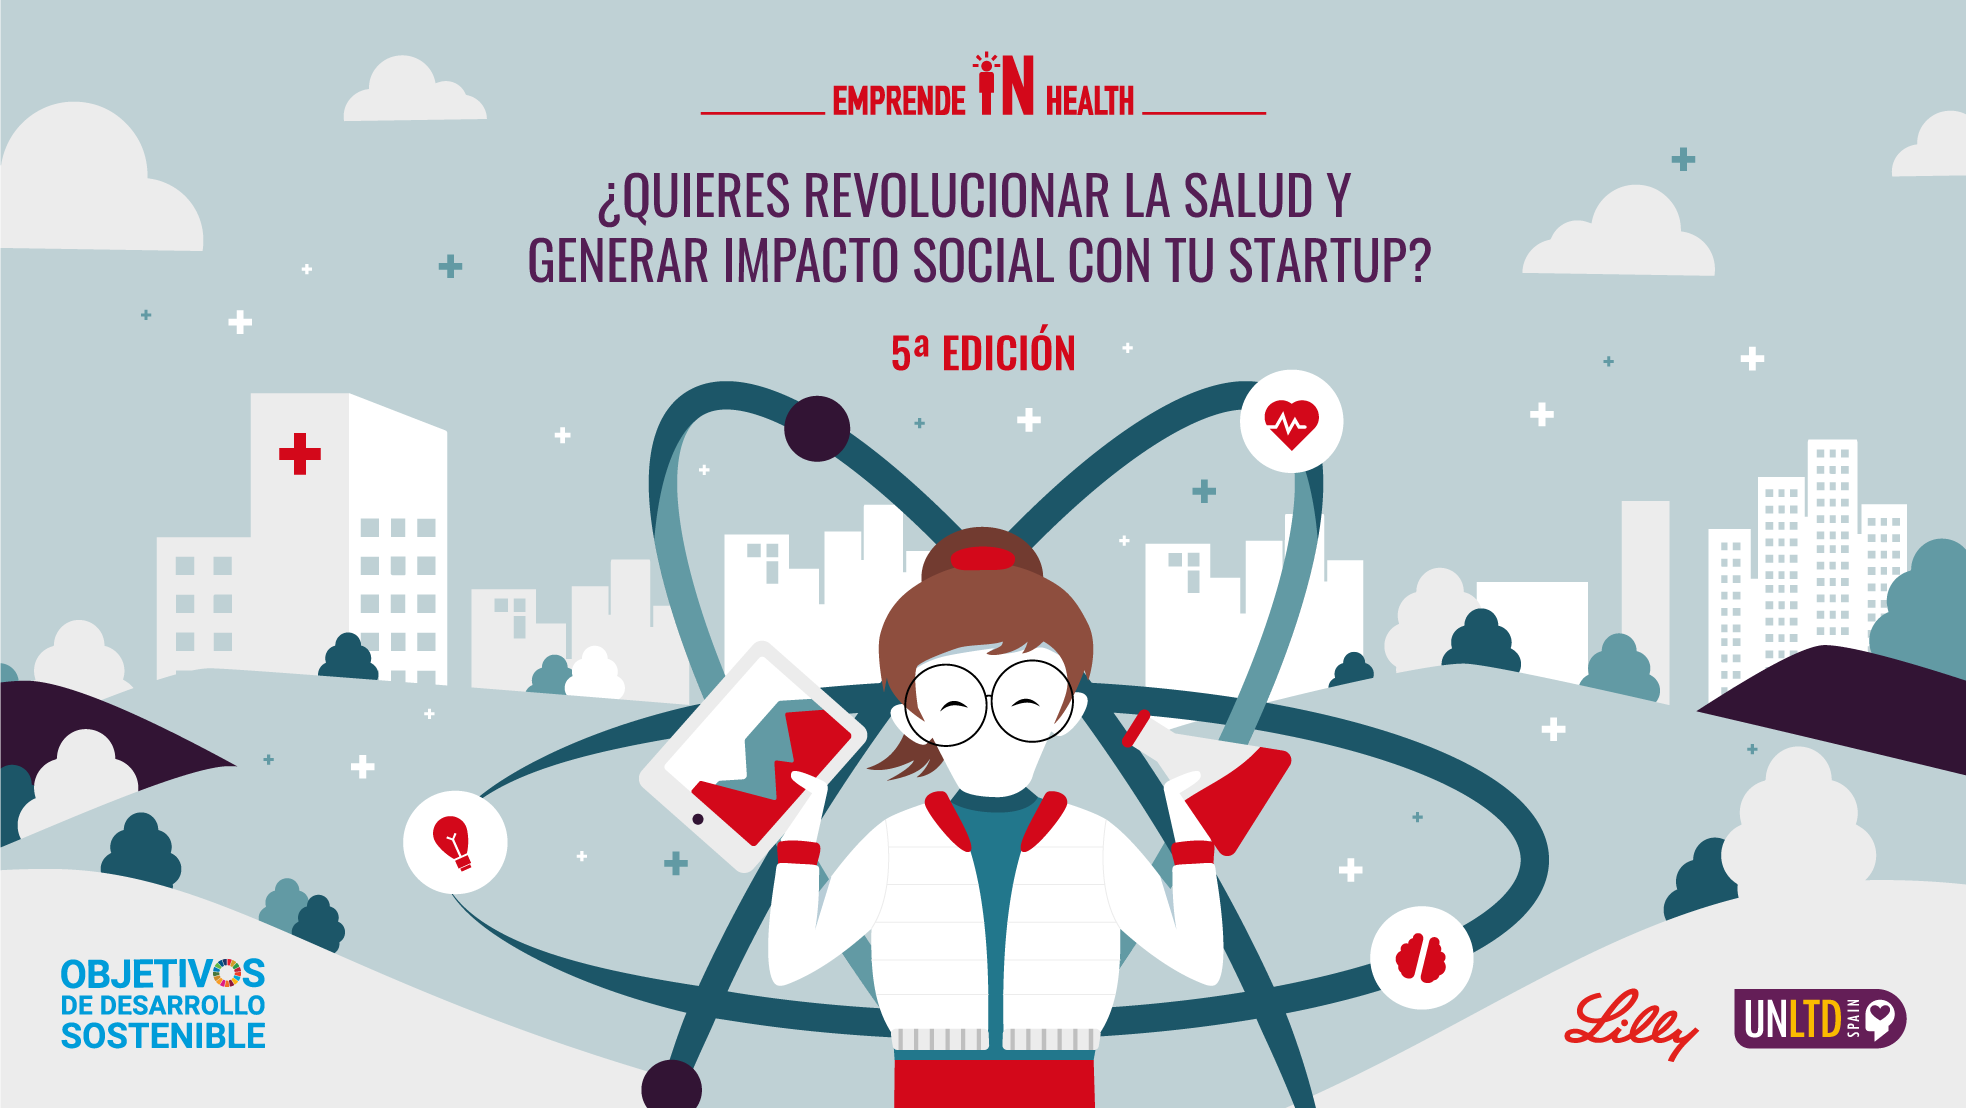 Cartel de Emprende in Health V edición